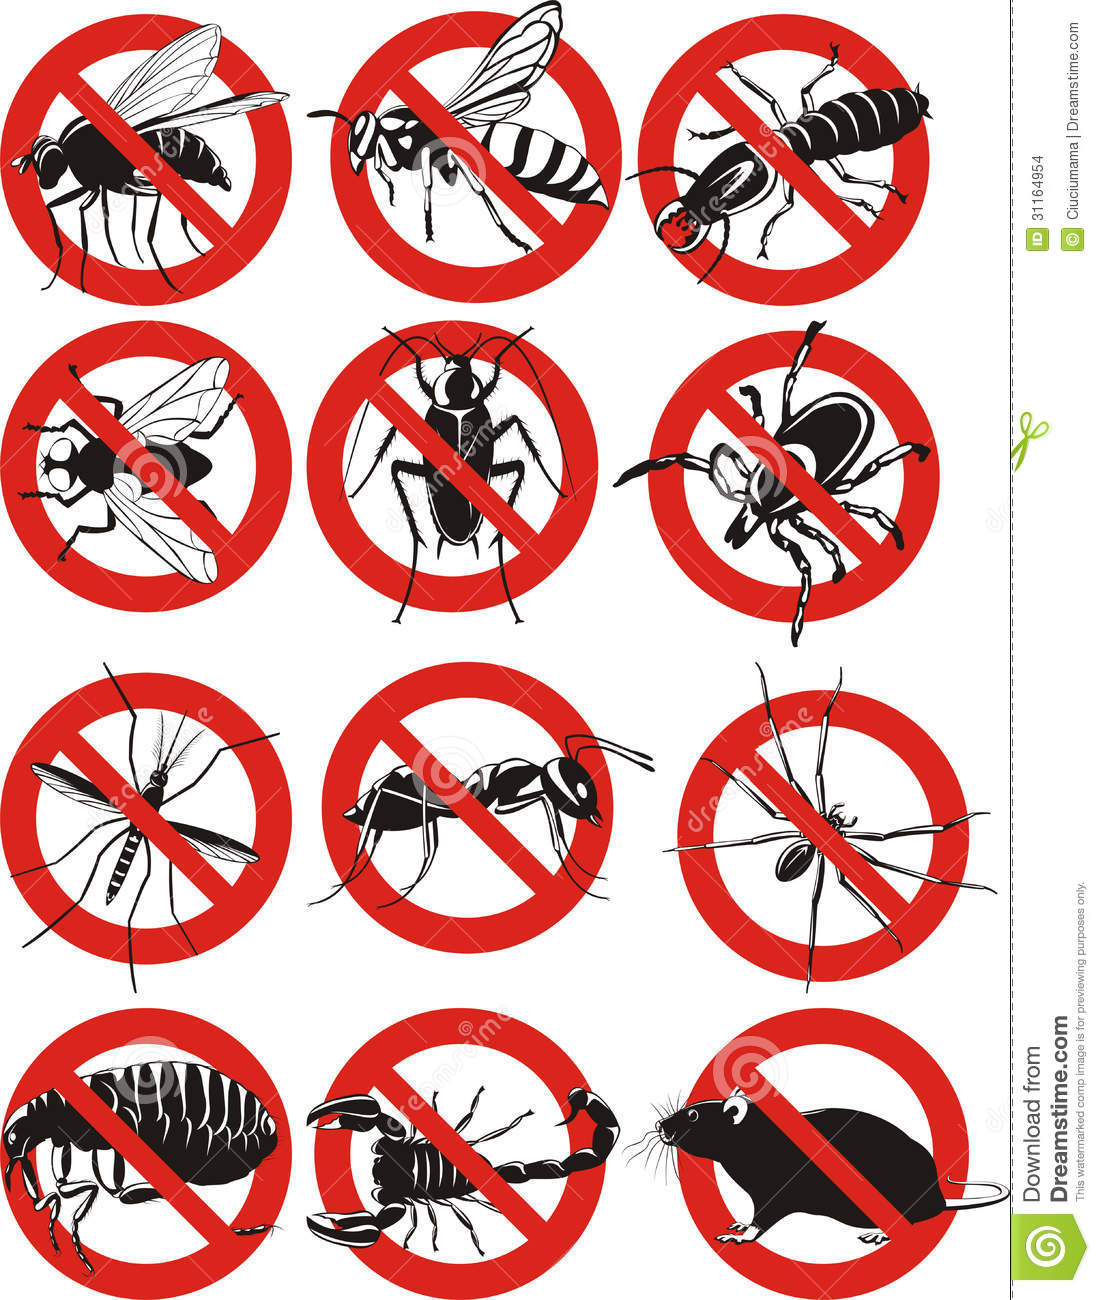 Pesticides for bed bugs in bangalore dating 5